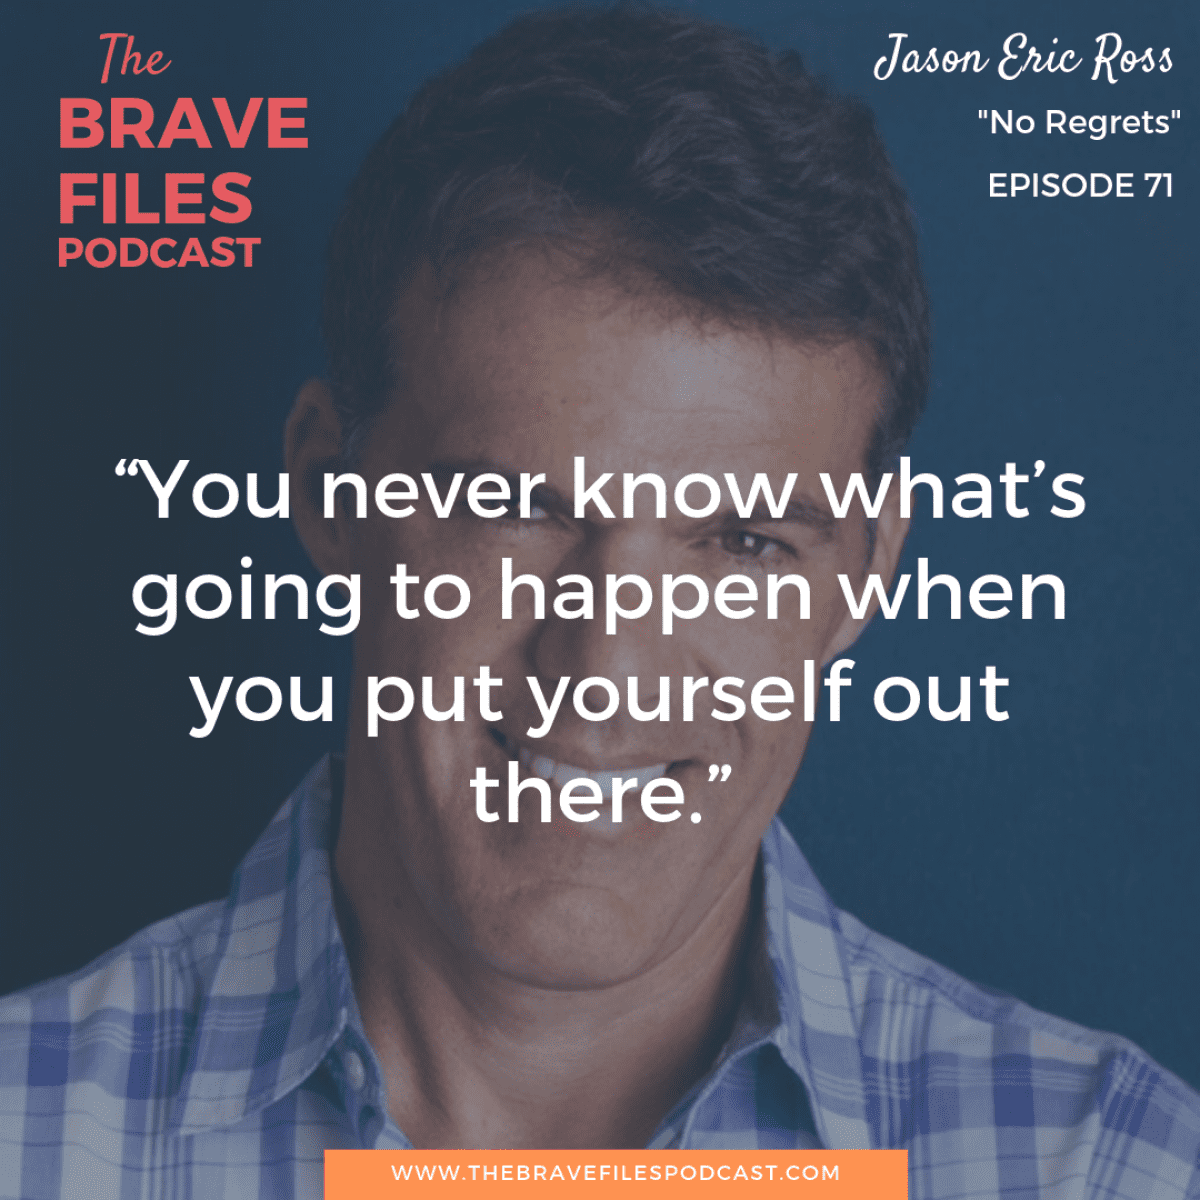 Throughout his lifetime, Jason Eric Ross reinvented himself over and over. Amazingly, he discovered a way to juggle it all as a licensed psychotherapist, mental health counselor, writer, and actor. He never sacrificed his goals demonstrating that determination and focus lead to a life of no regrets. The Brave Files.